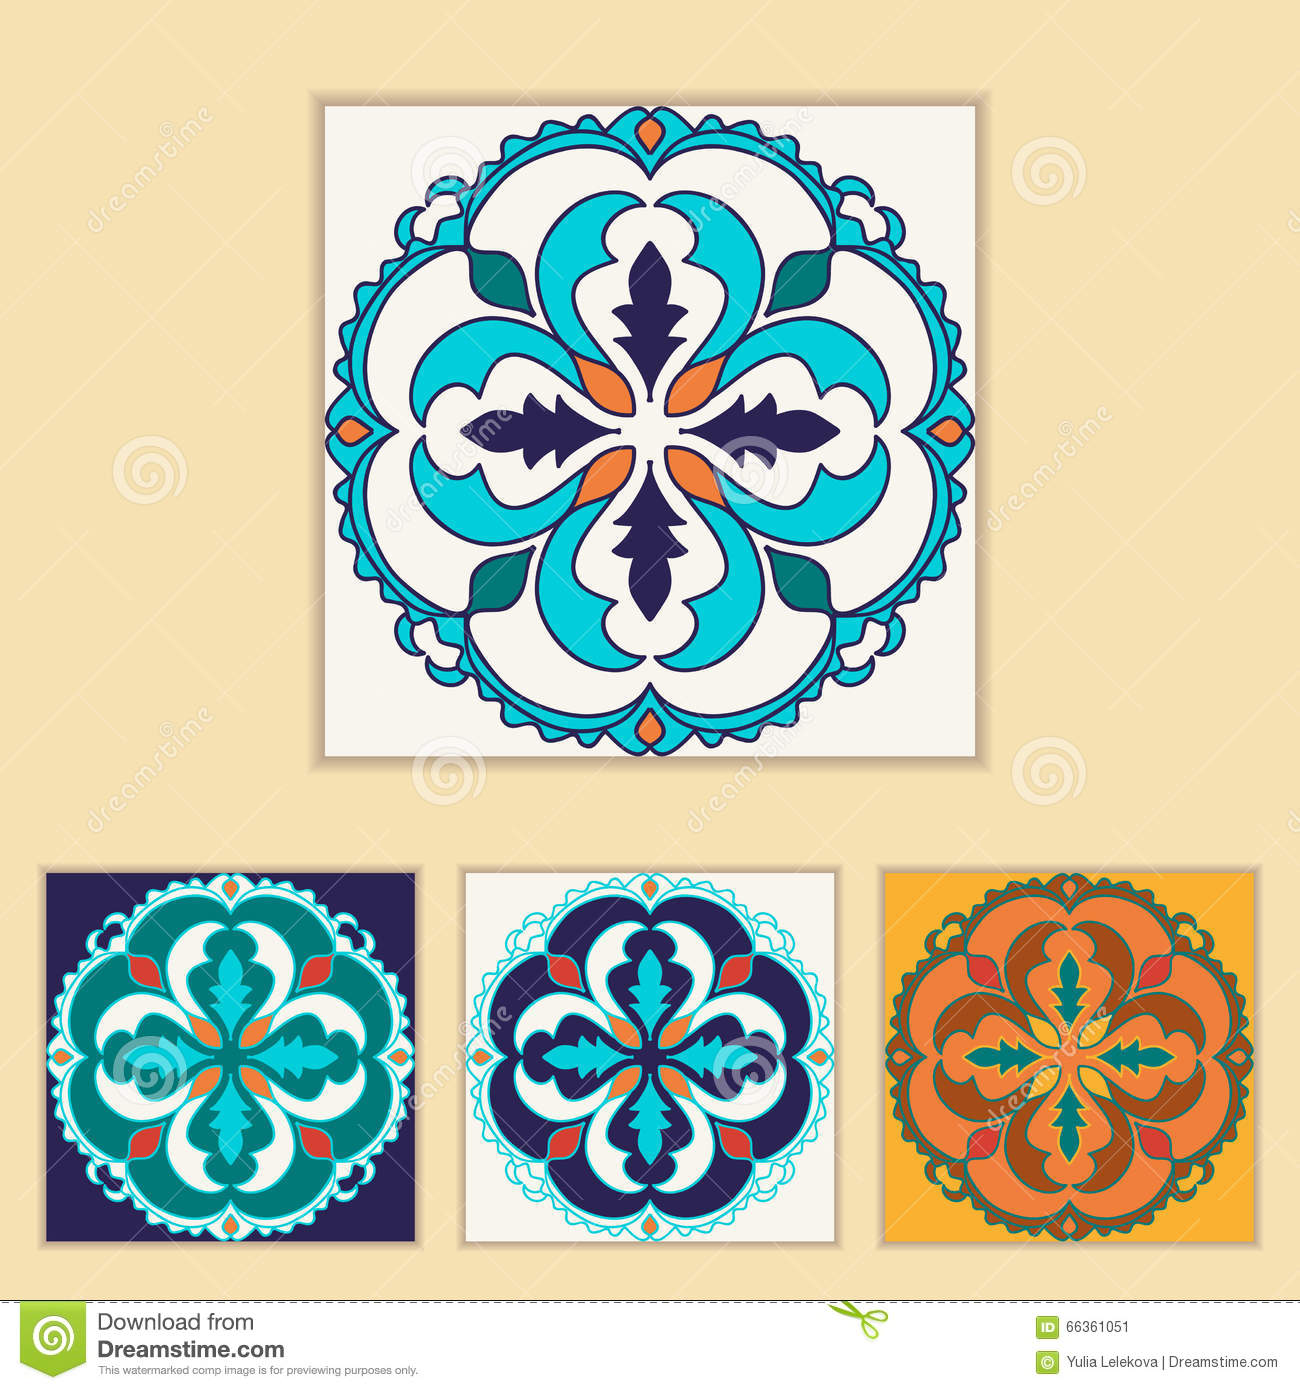 Vector Portuguese Tile Design In Four Different Color Beautiful Colored Pattern For Design And Fashion With Decorative Elements Stock Vector Illustration Of Collage Design 66361051